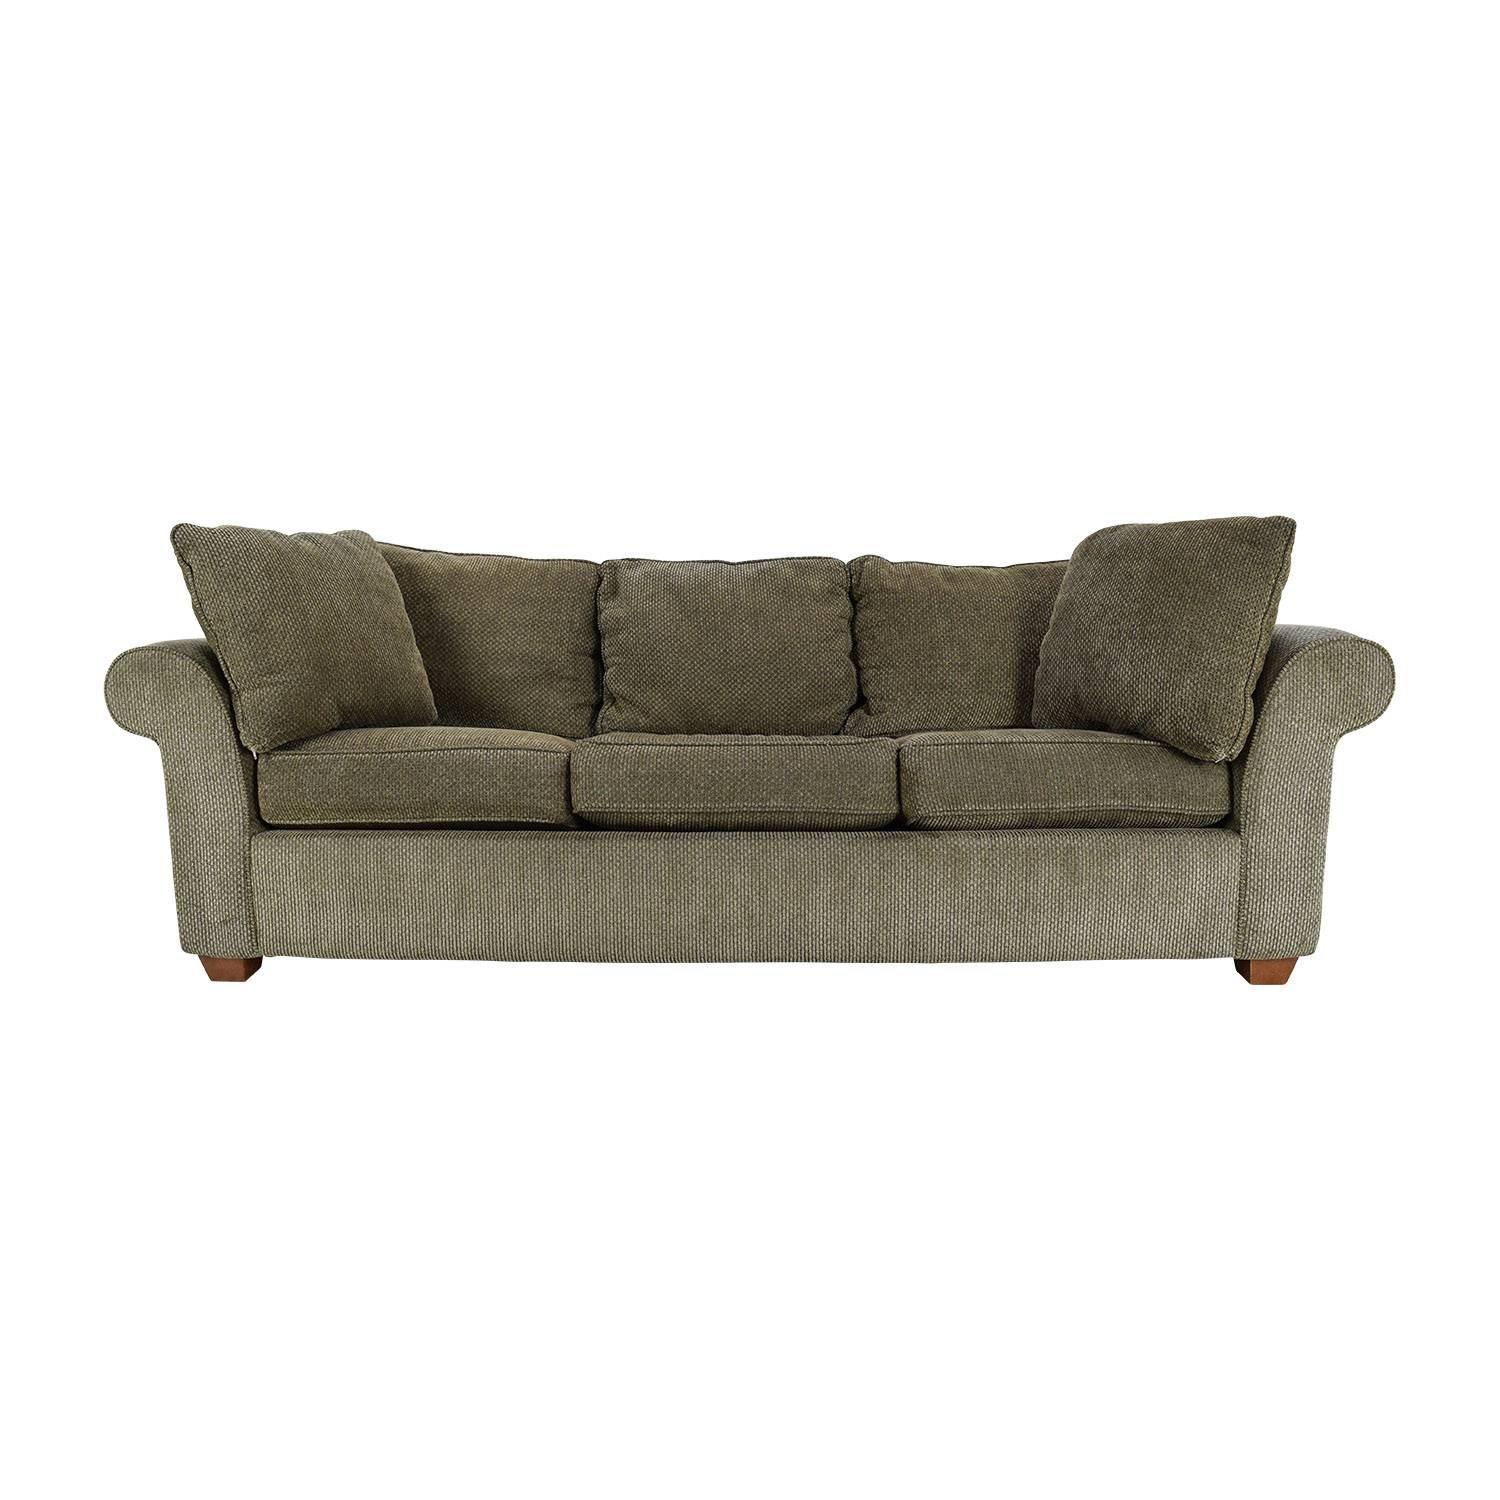 82% Off - Bloomingdale's Bloomingdale's Pullout Sofa / Sofas intended for Bloomingdales Sofas (Image 7 of 15)